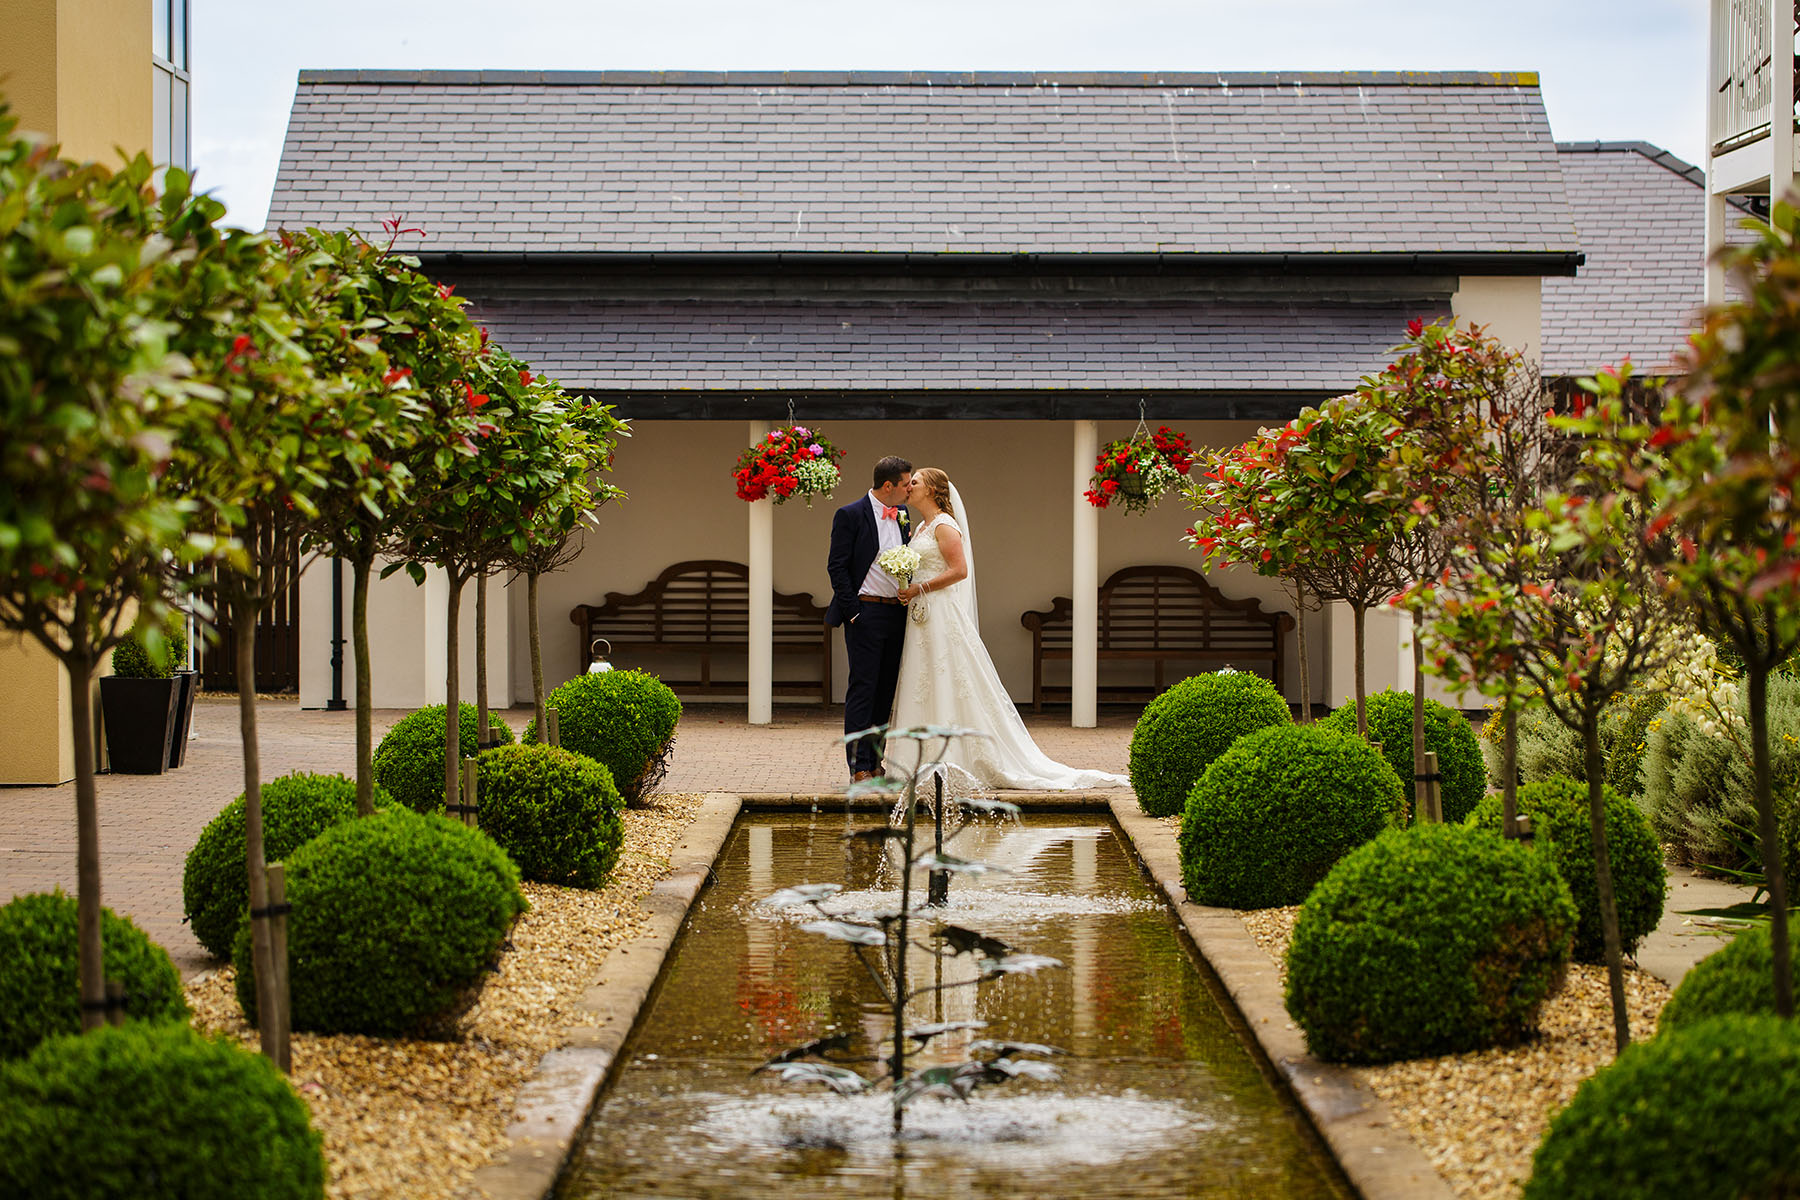 Bride and groom portrait near water feature